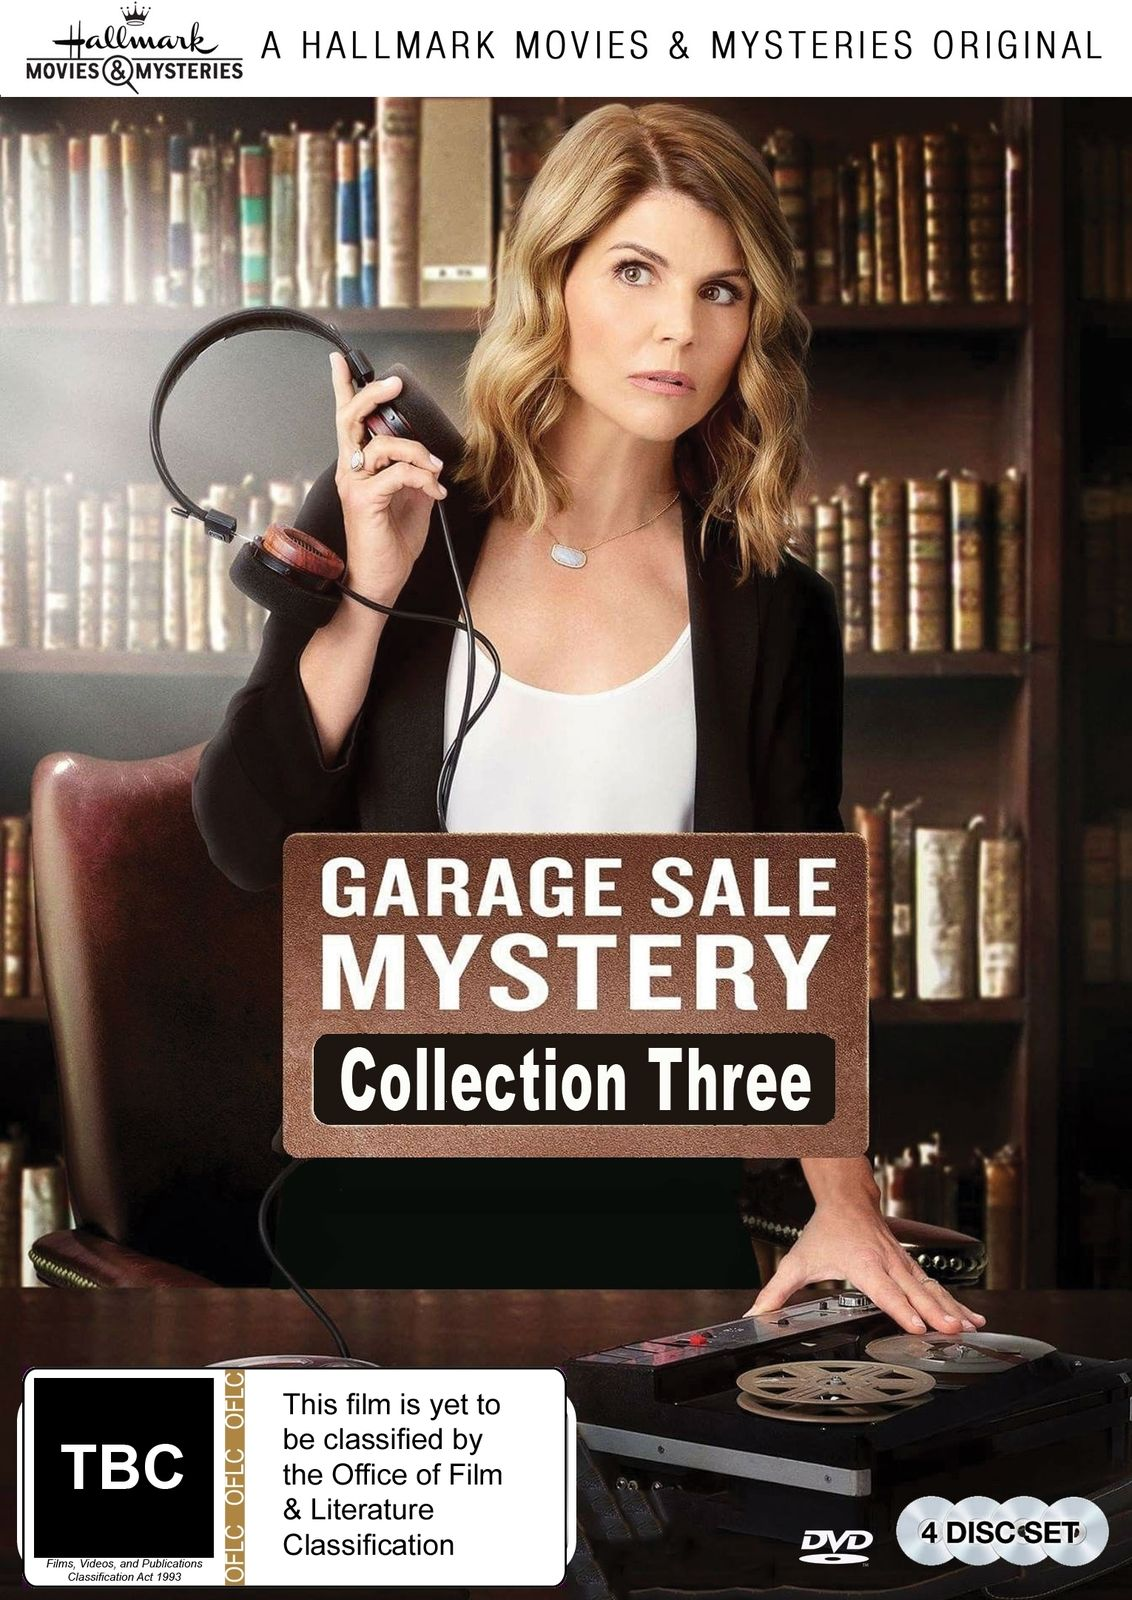 Garage Sale Mystery Collection Three Dvd Garage Sale Mystery Garage Sale Mystery Movies Hallmark Movies